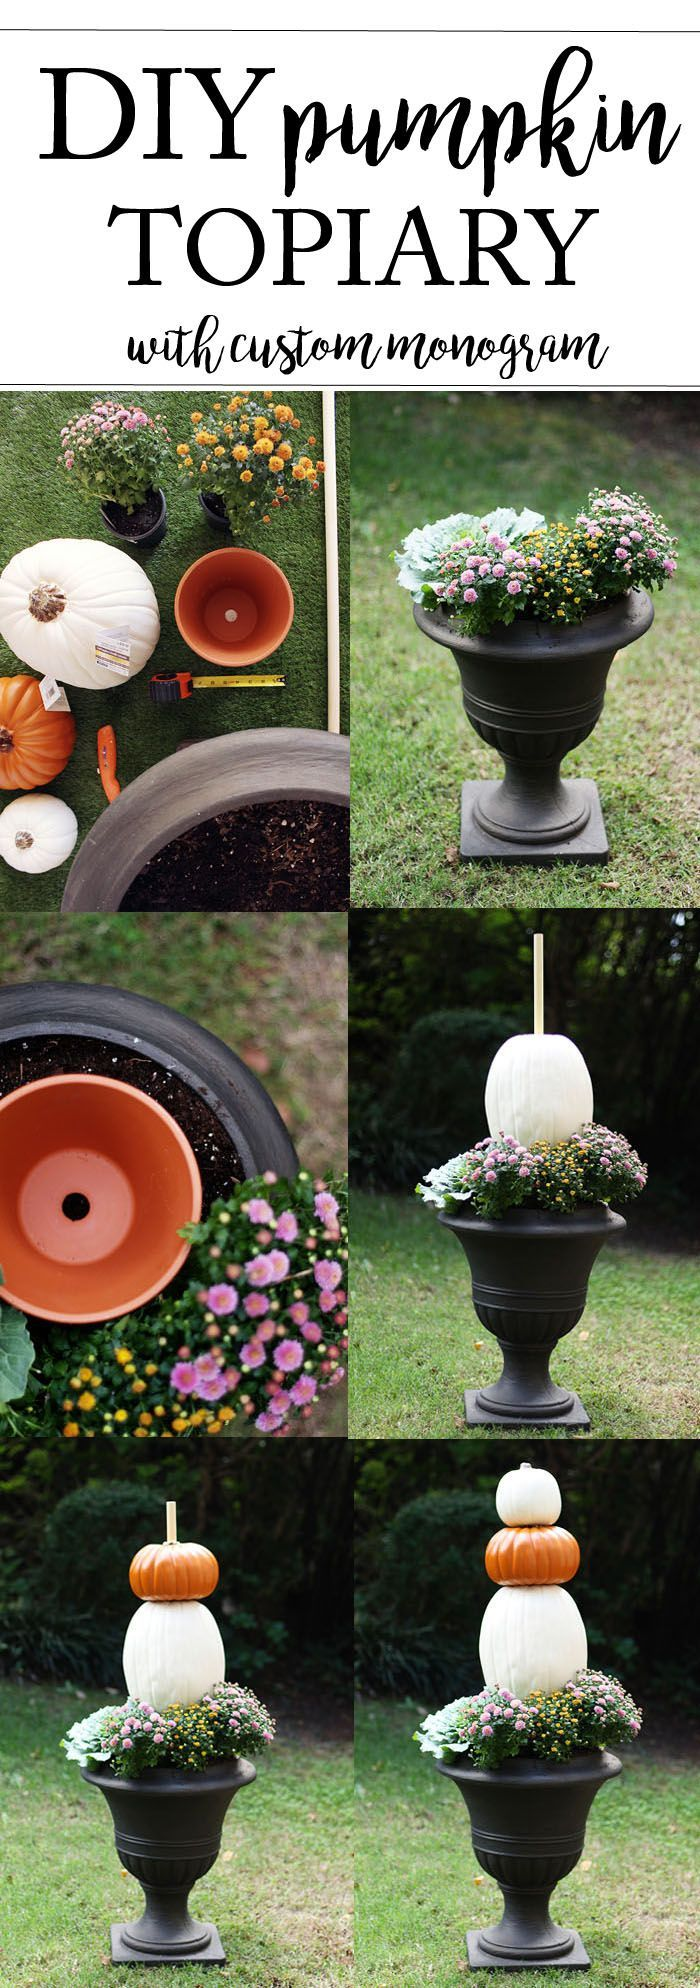 Wonderful Pumpkin Topiary Ideas Part - 14: DIY Pumpkin Topiary For A Fun Fall Project